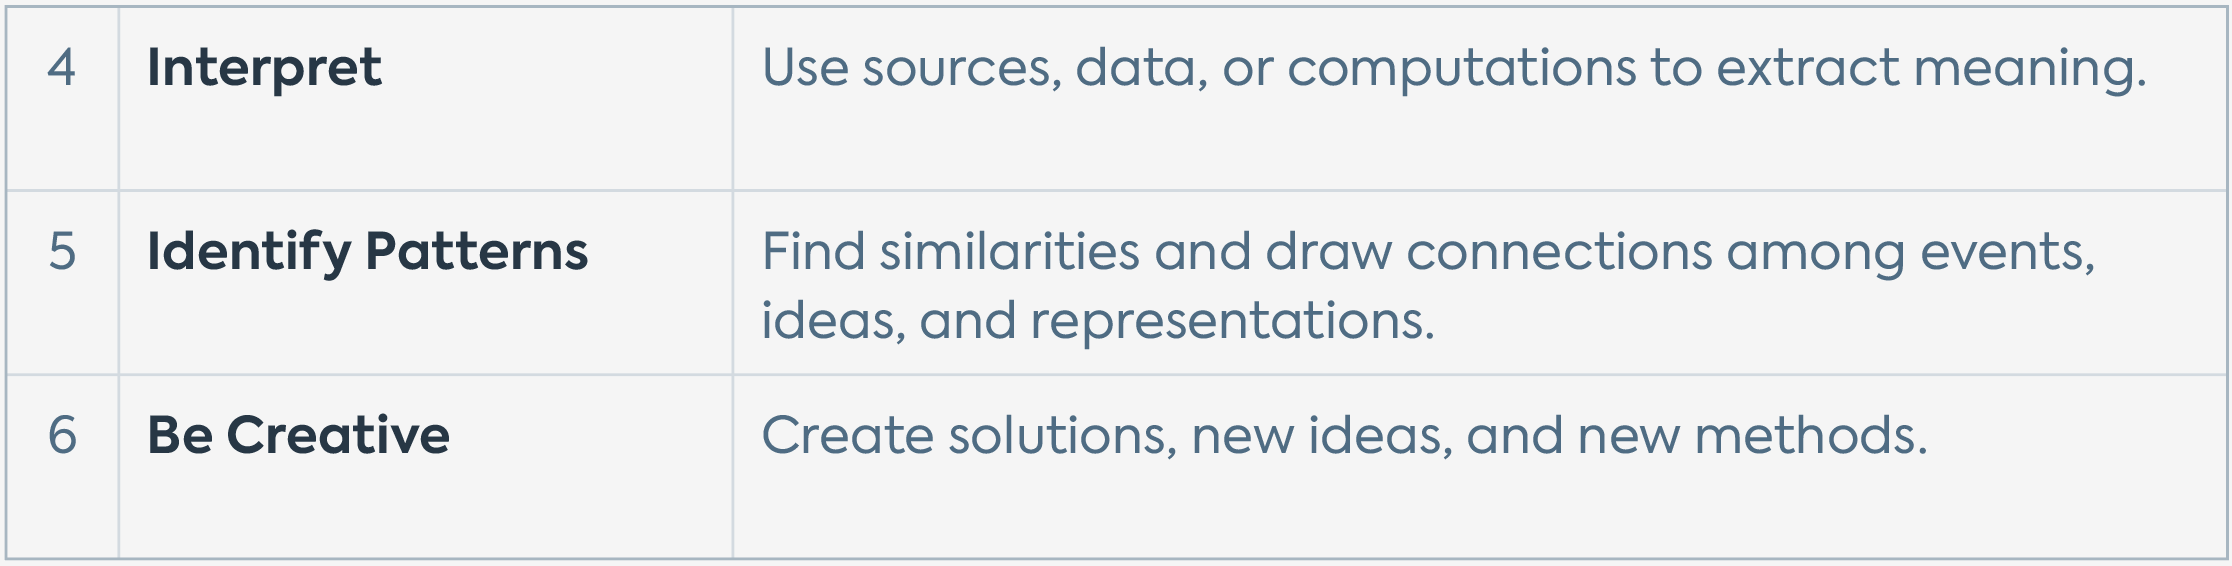 """A table featuring the Learning Skills in the group """"Learn how to analyze"""" — Interpret, Identify Patterns, and Be Creative — with brief descriptions for each."""